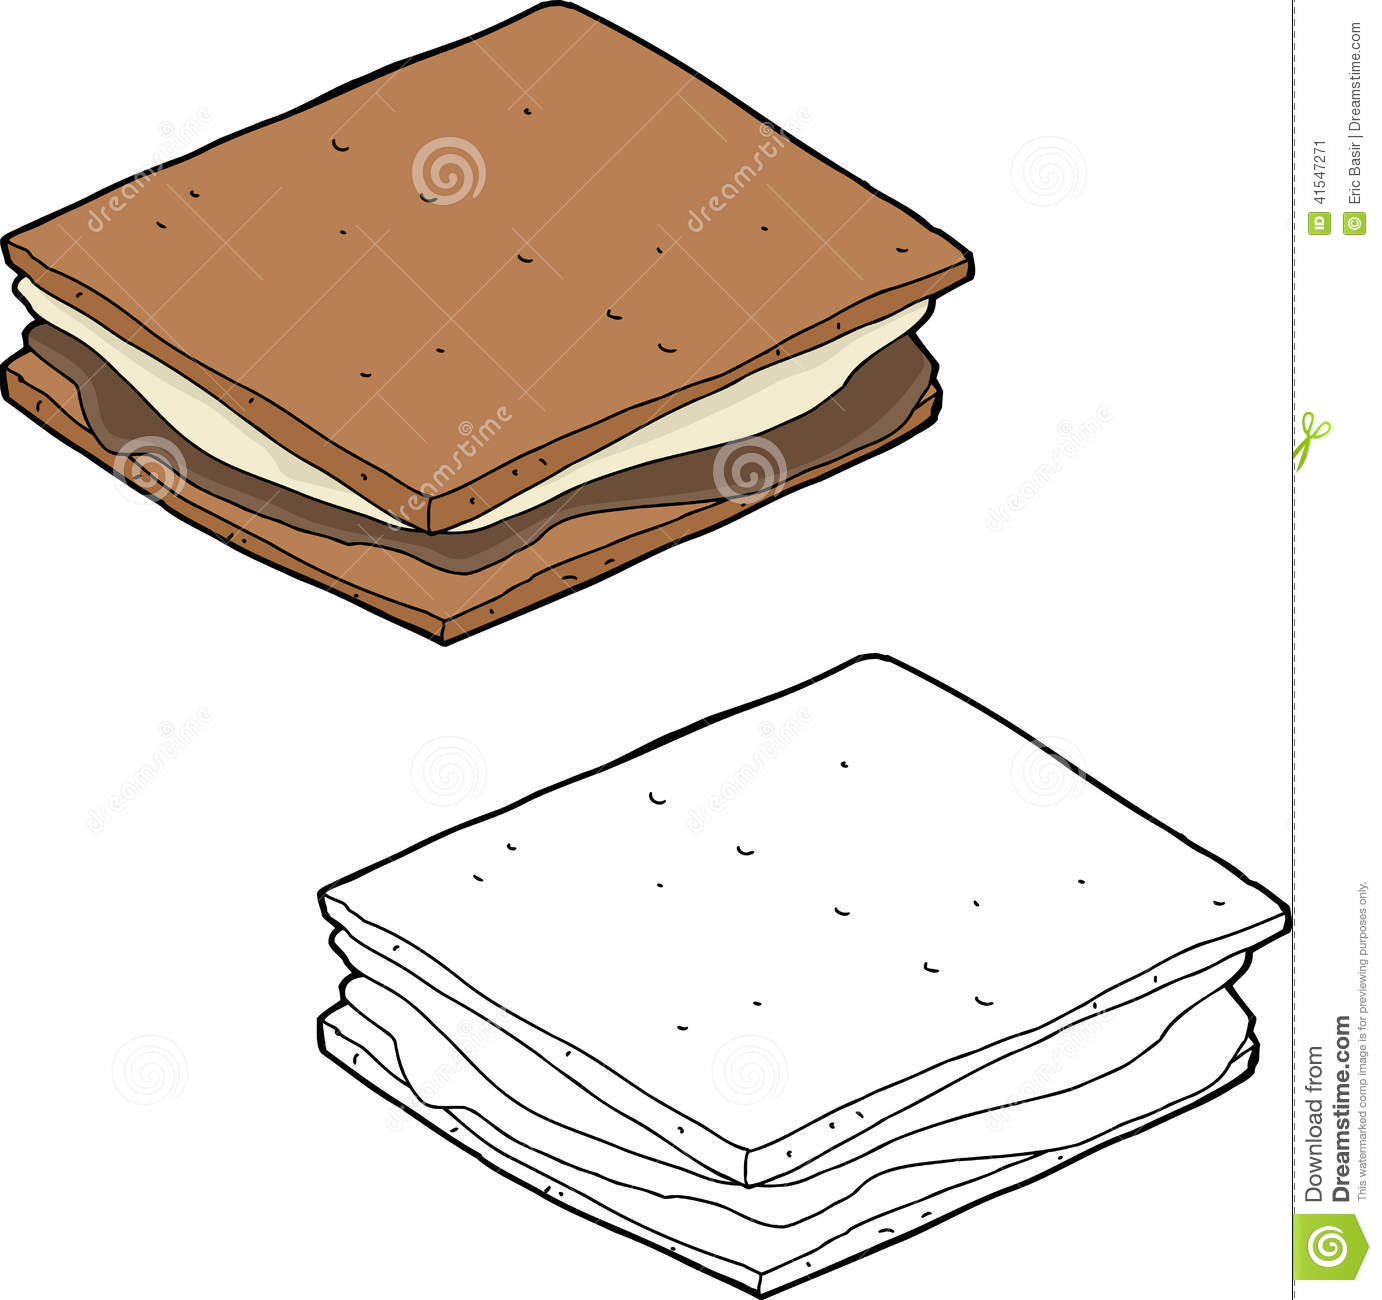 hight resolution of hand drawn smore snack over isolated background stock illustration